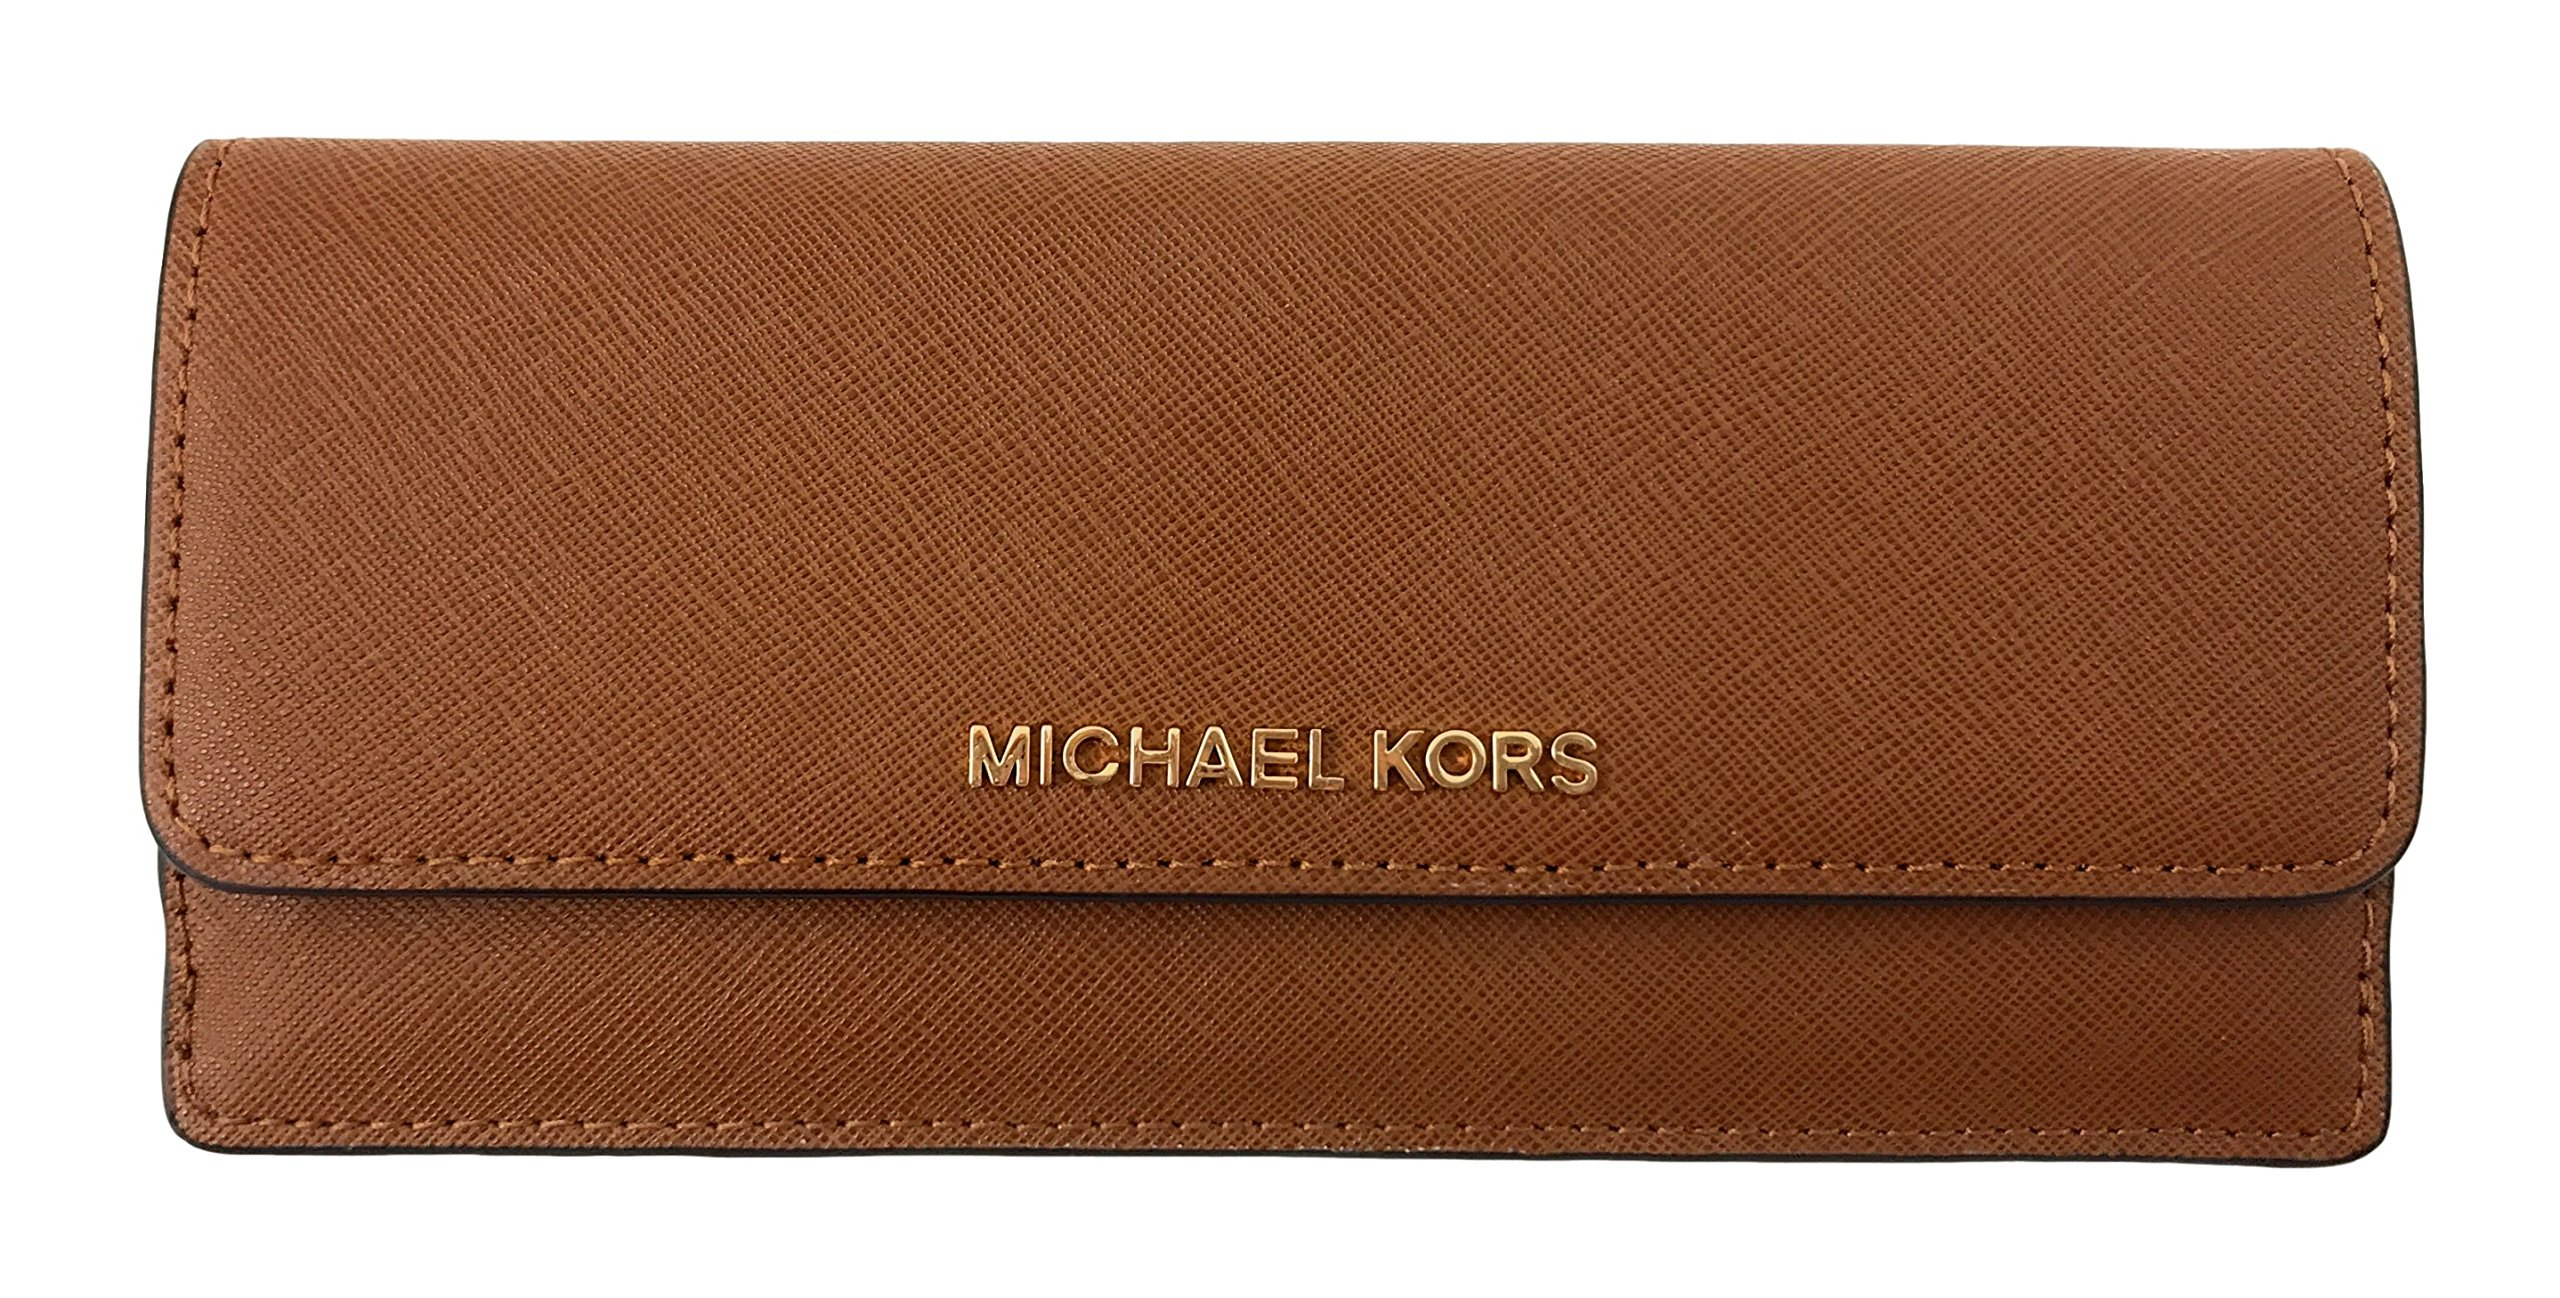 Michael Kors Jet Set Travel Saffiano Leather Slim Flat Wallet in Luggage